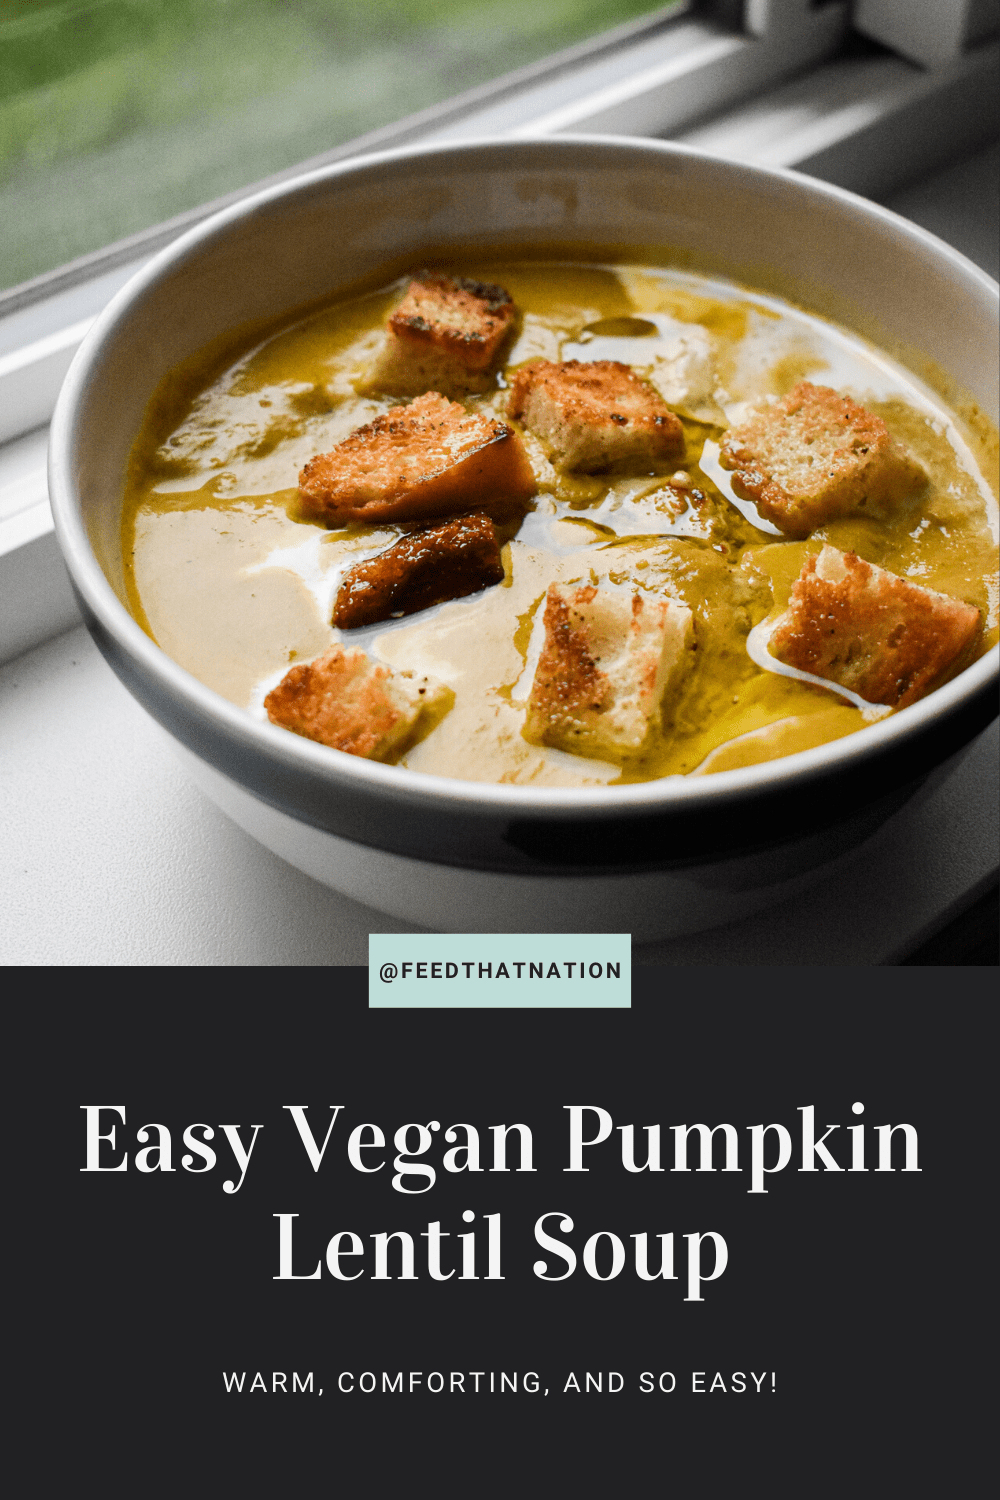 Easy Vegan Pumpkin Lentil Soup